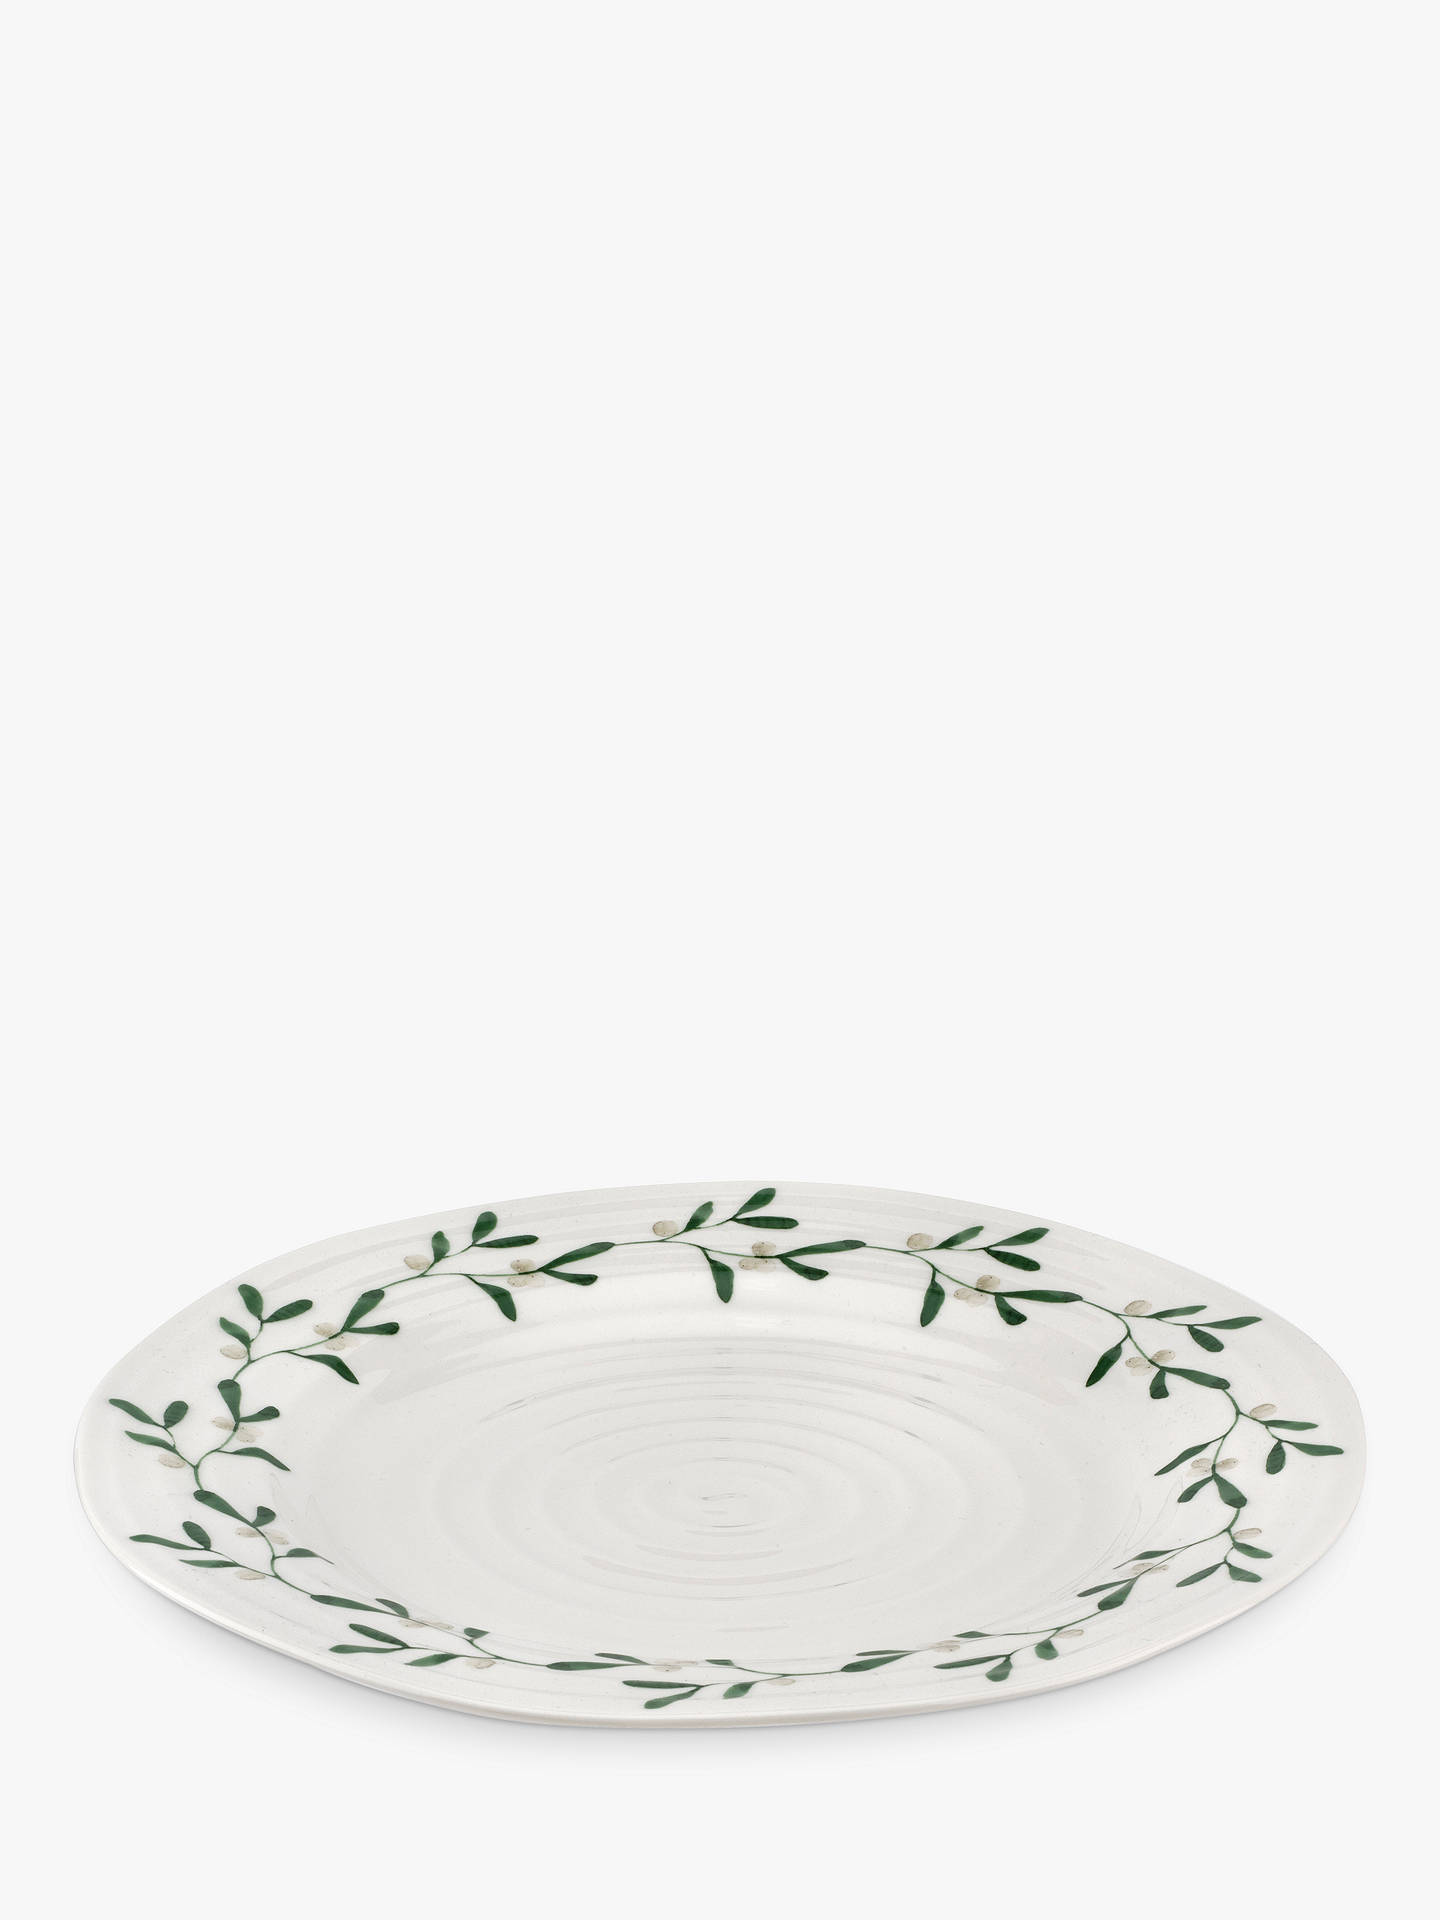 Buy Sophie Conran for Portmeirion Mistletoe Dinner Plate, 28cm, White/Multi Online at johnlewis.com